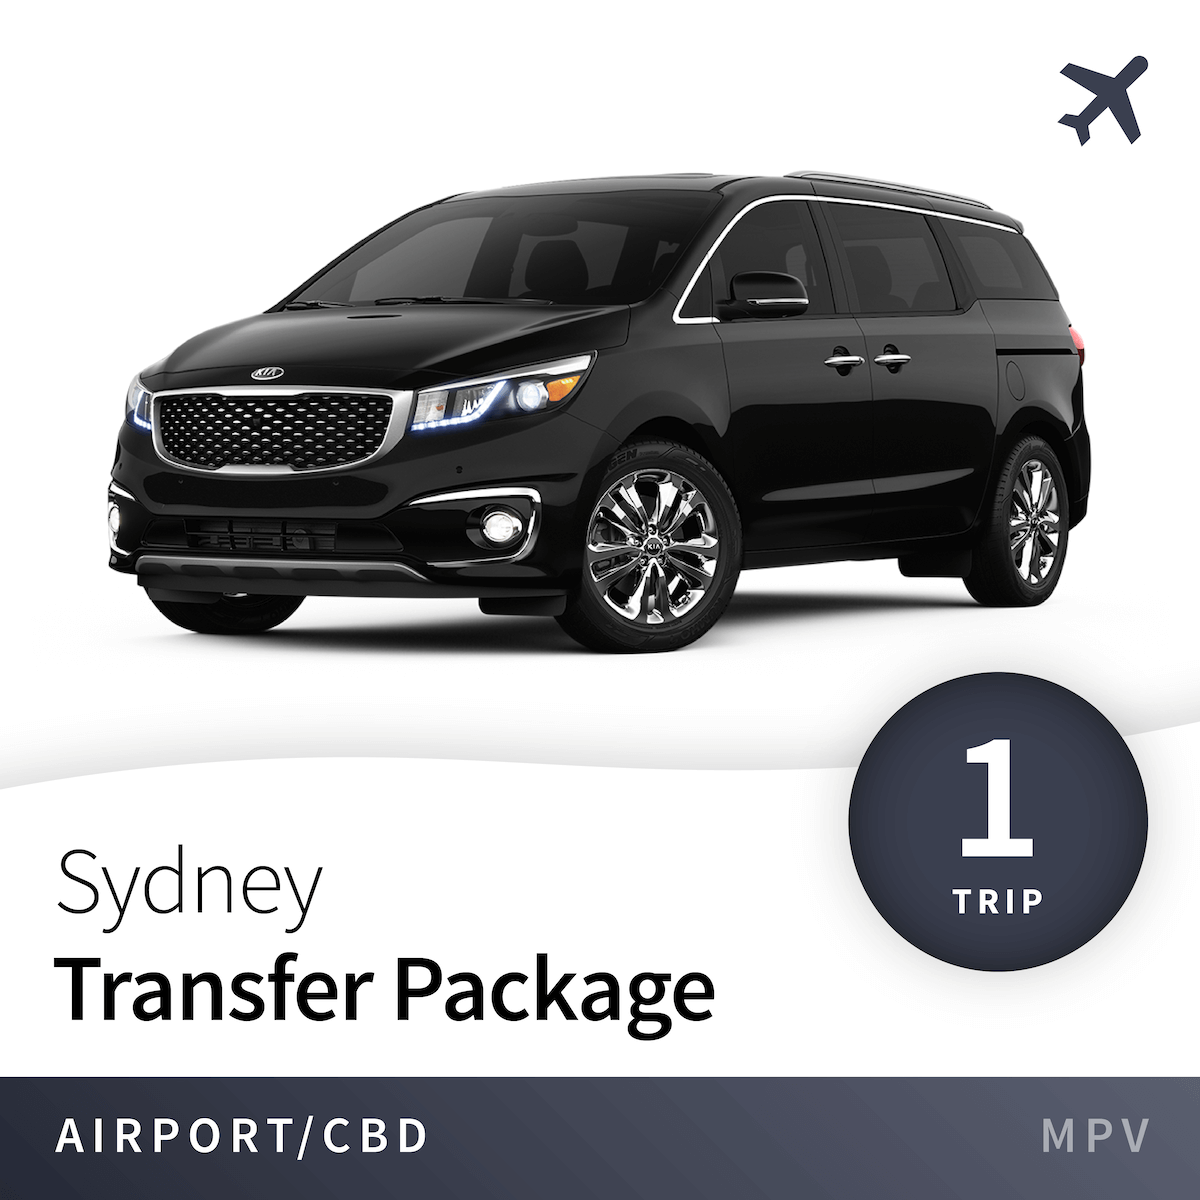 Sydney Airport Transfer Package - MPV (1 Trip) 11